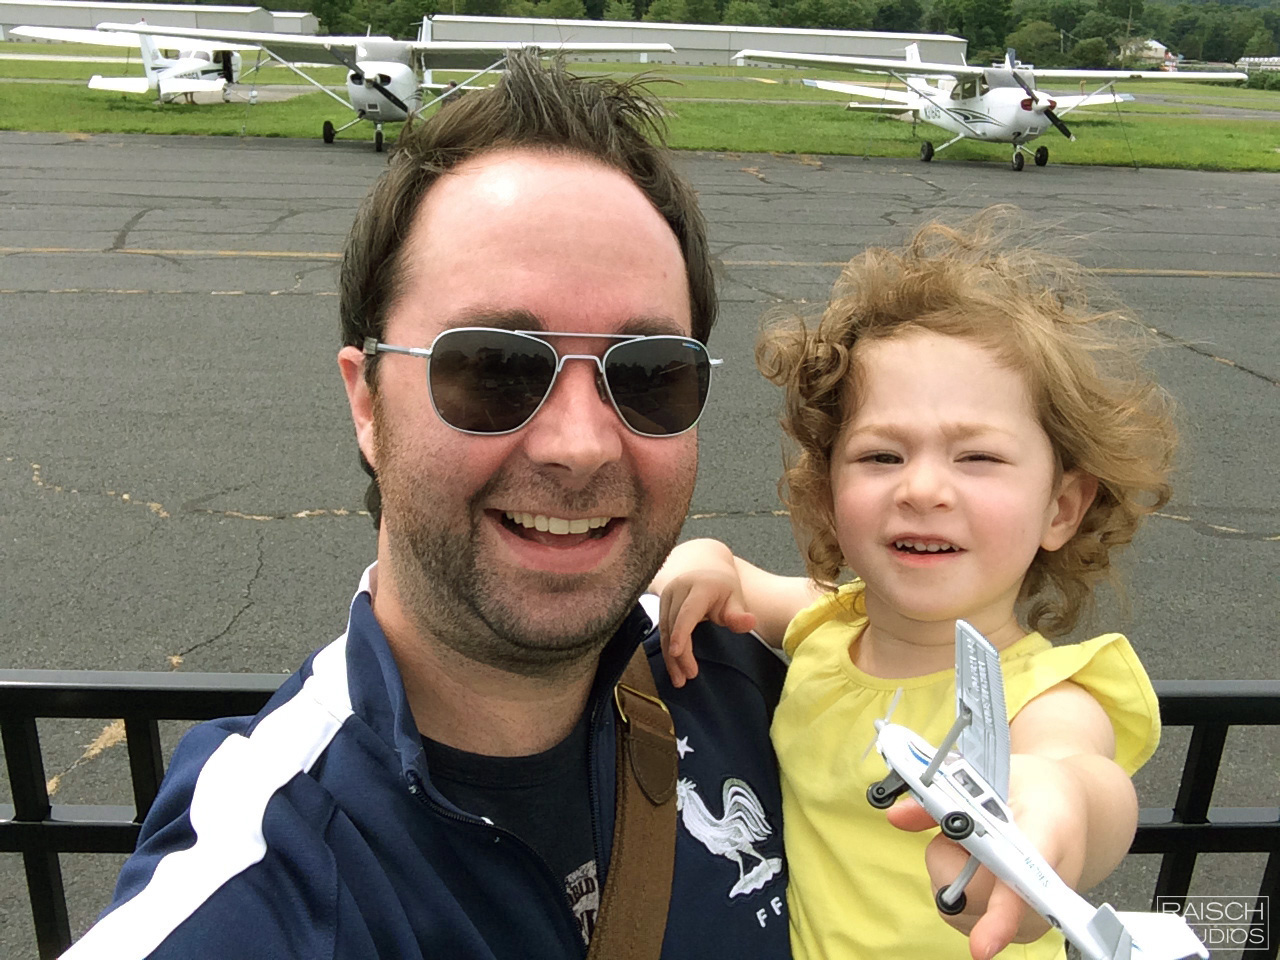 Michael and his daughter planespotting in NJ, Summer 2014